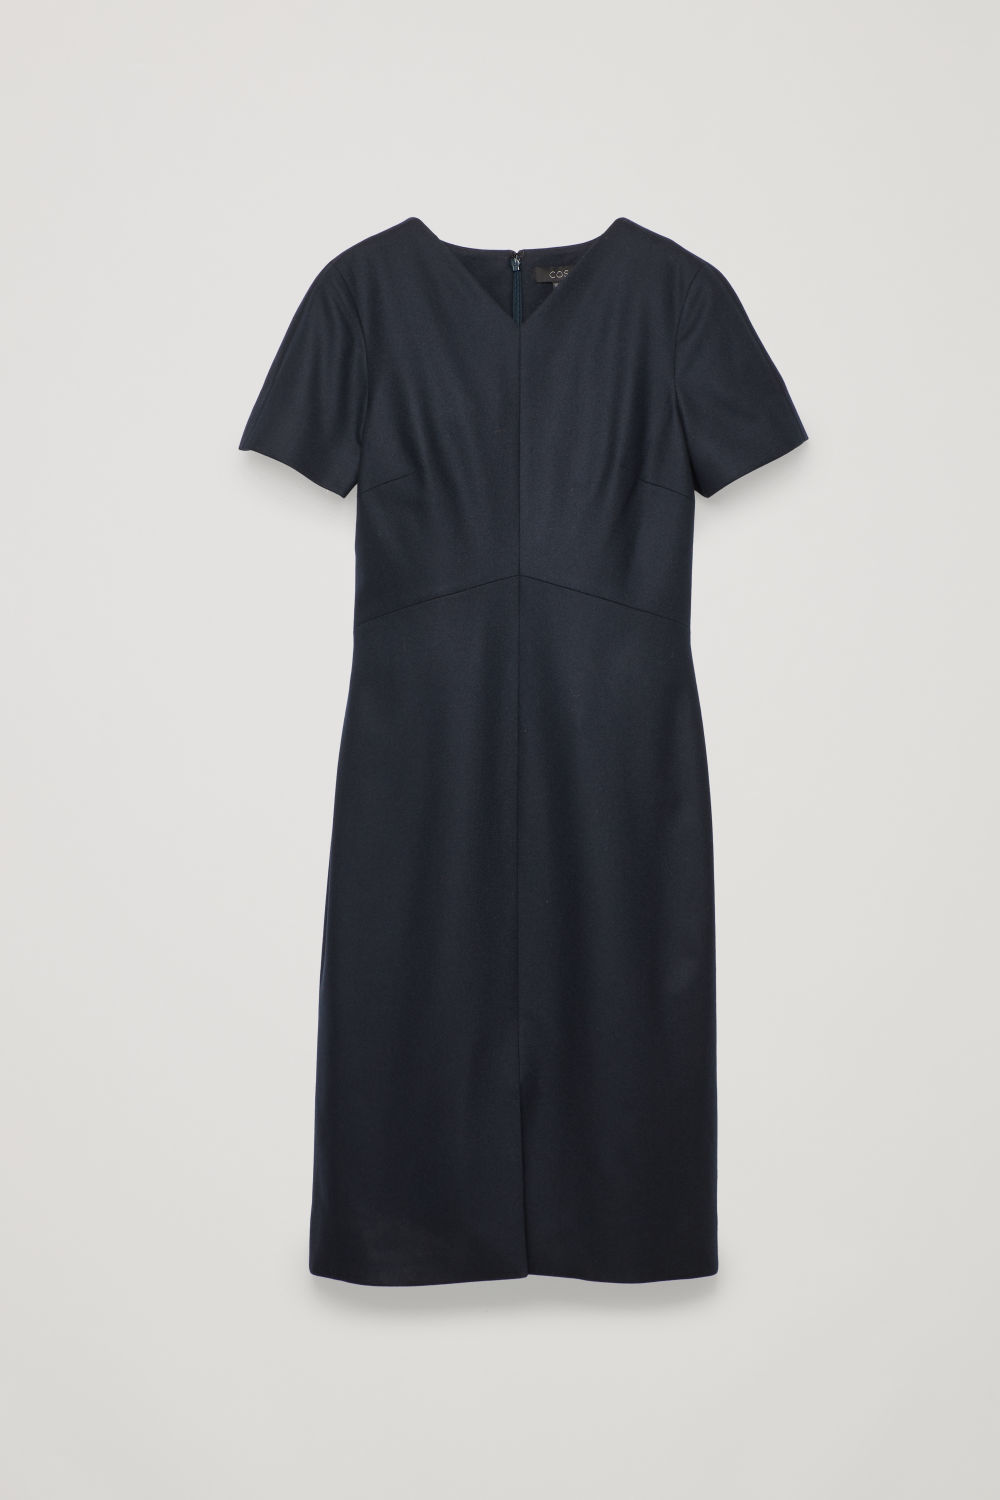 WOOL-CASHMERE TAILORED DRESS